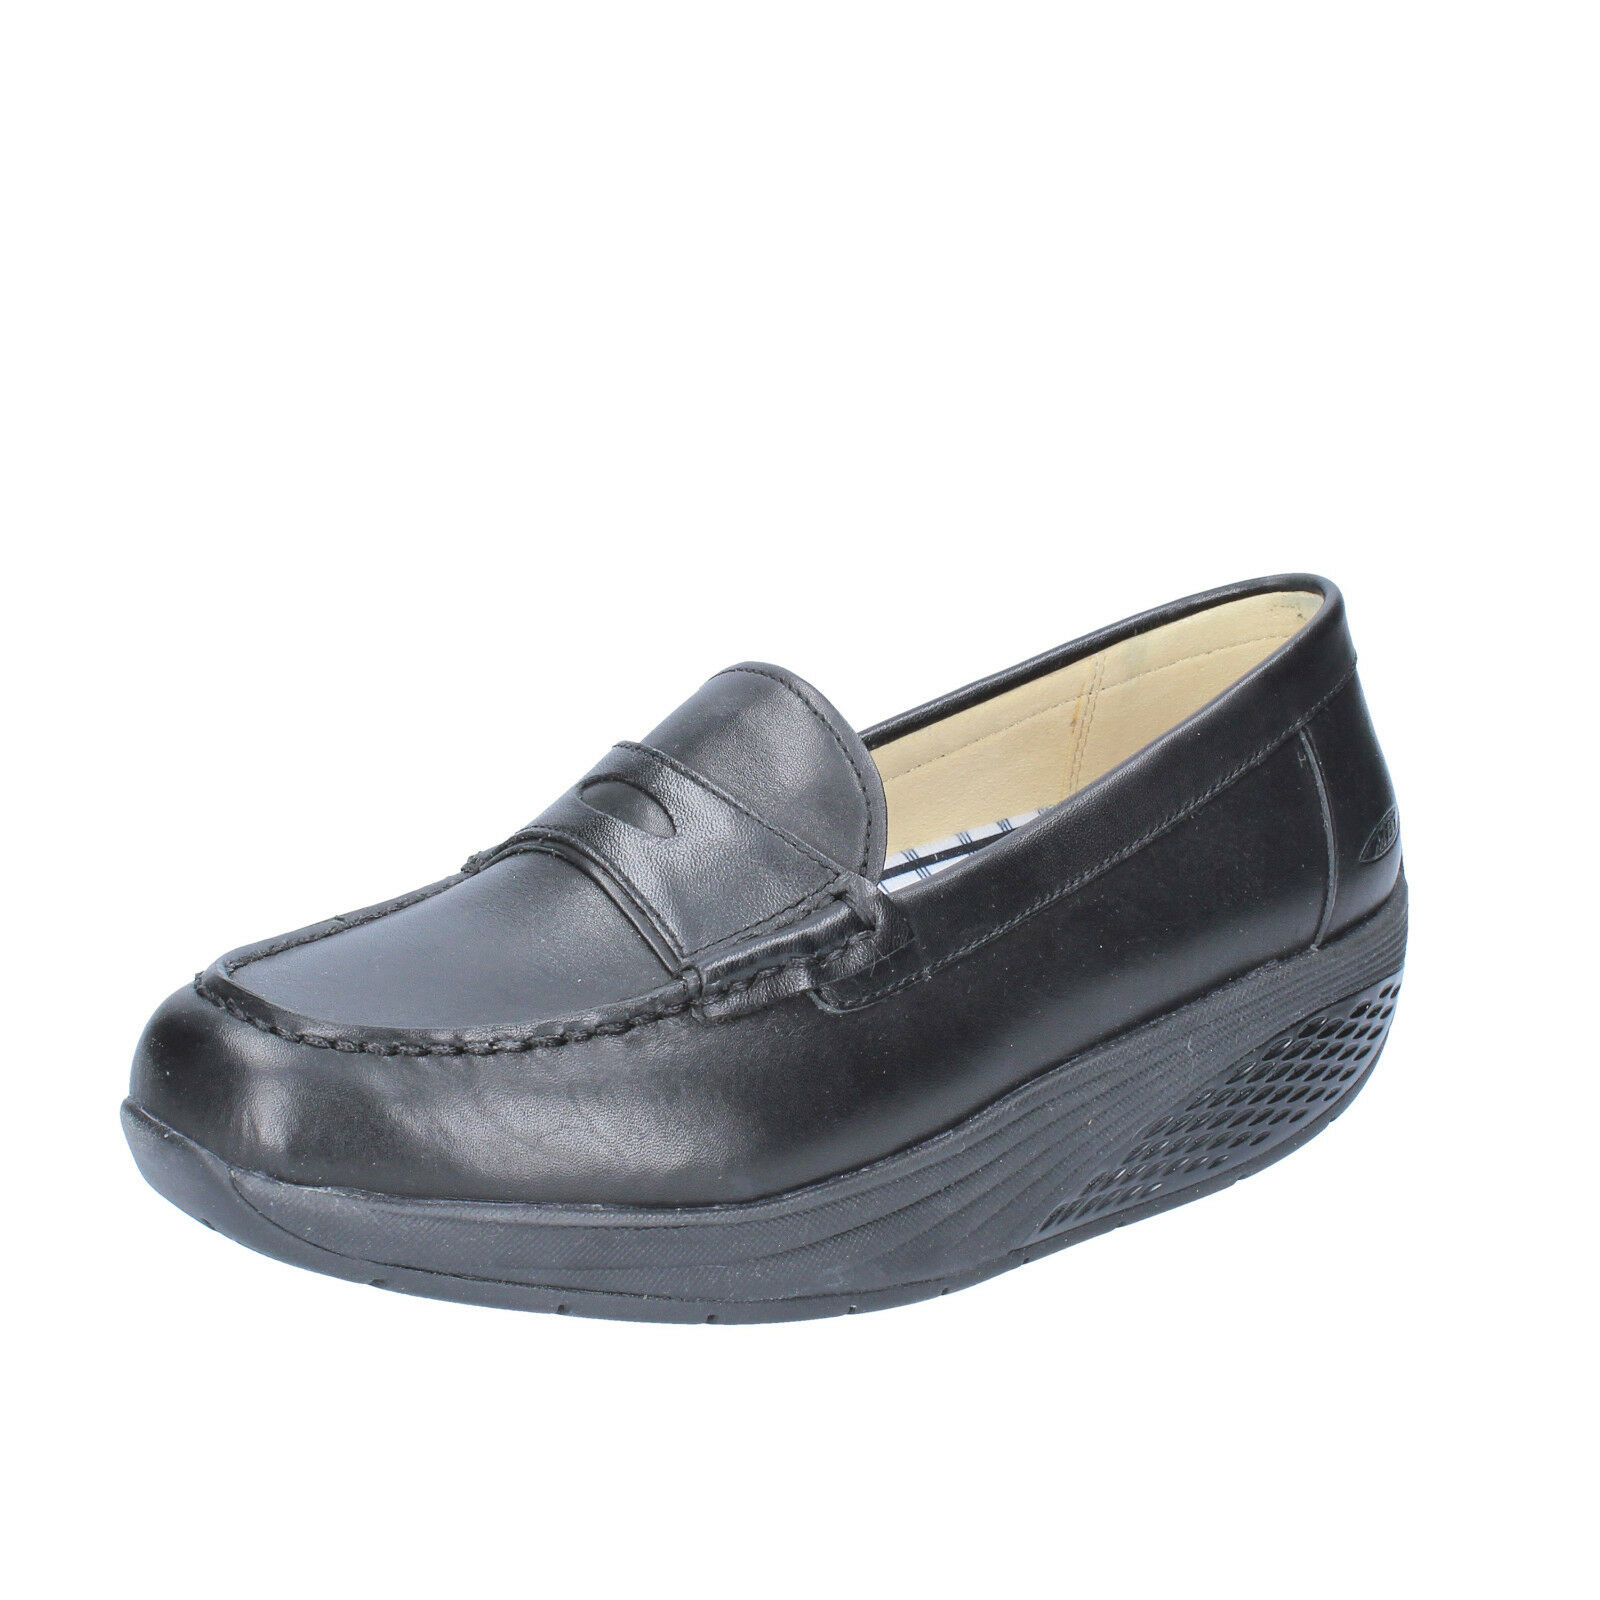 Women's shoes MBT 4   4,5 (EU 35) loafers black leather performance AB465-35